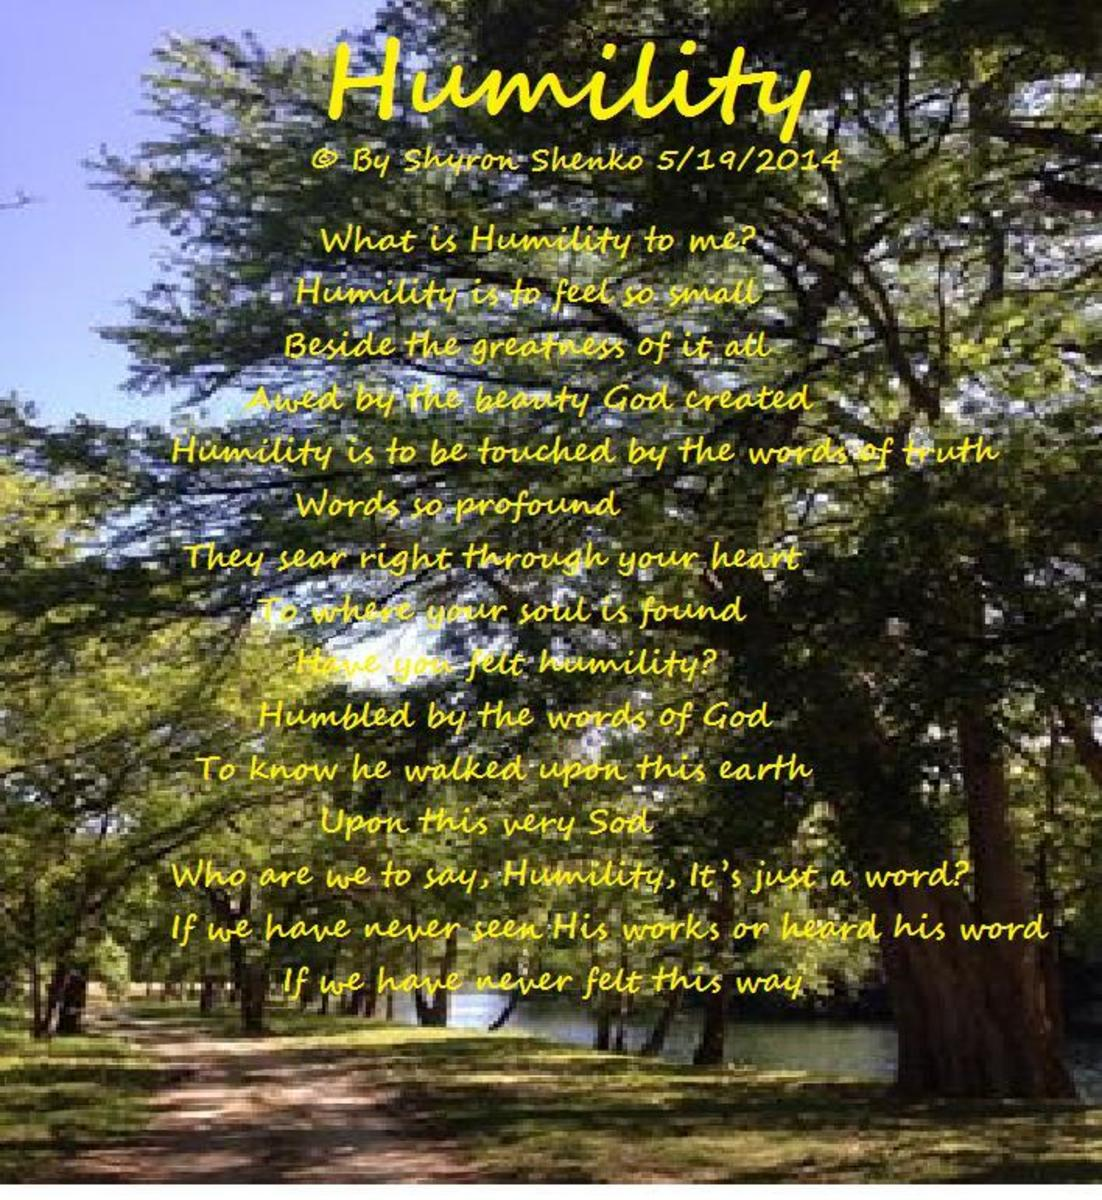 Humility - The 17th Word-in the Good Words Project (Poem)